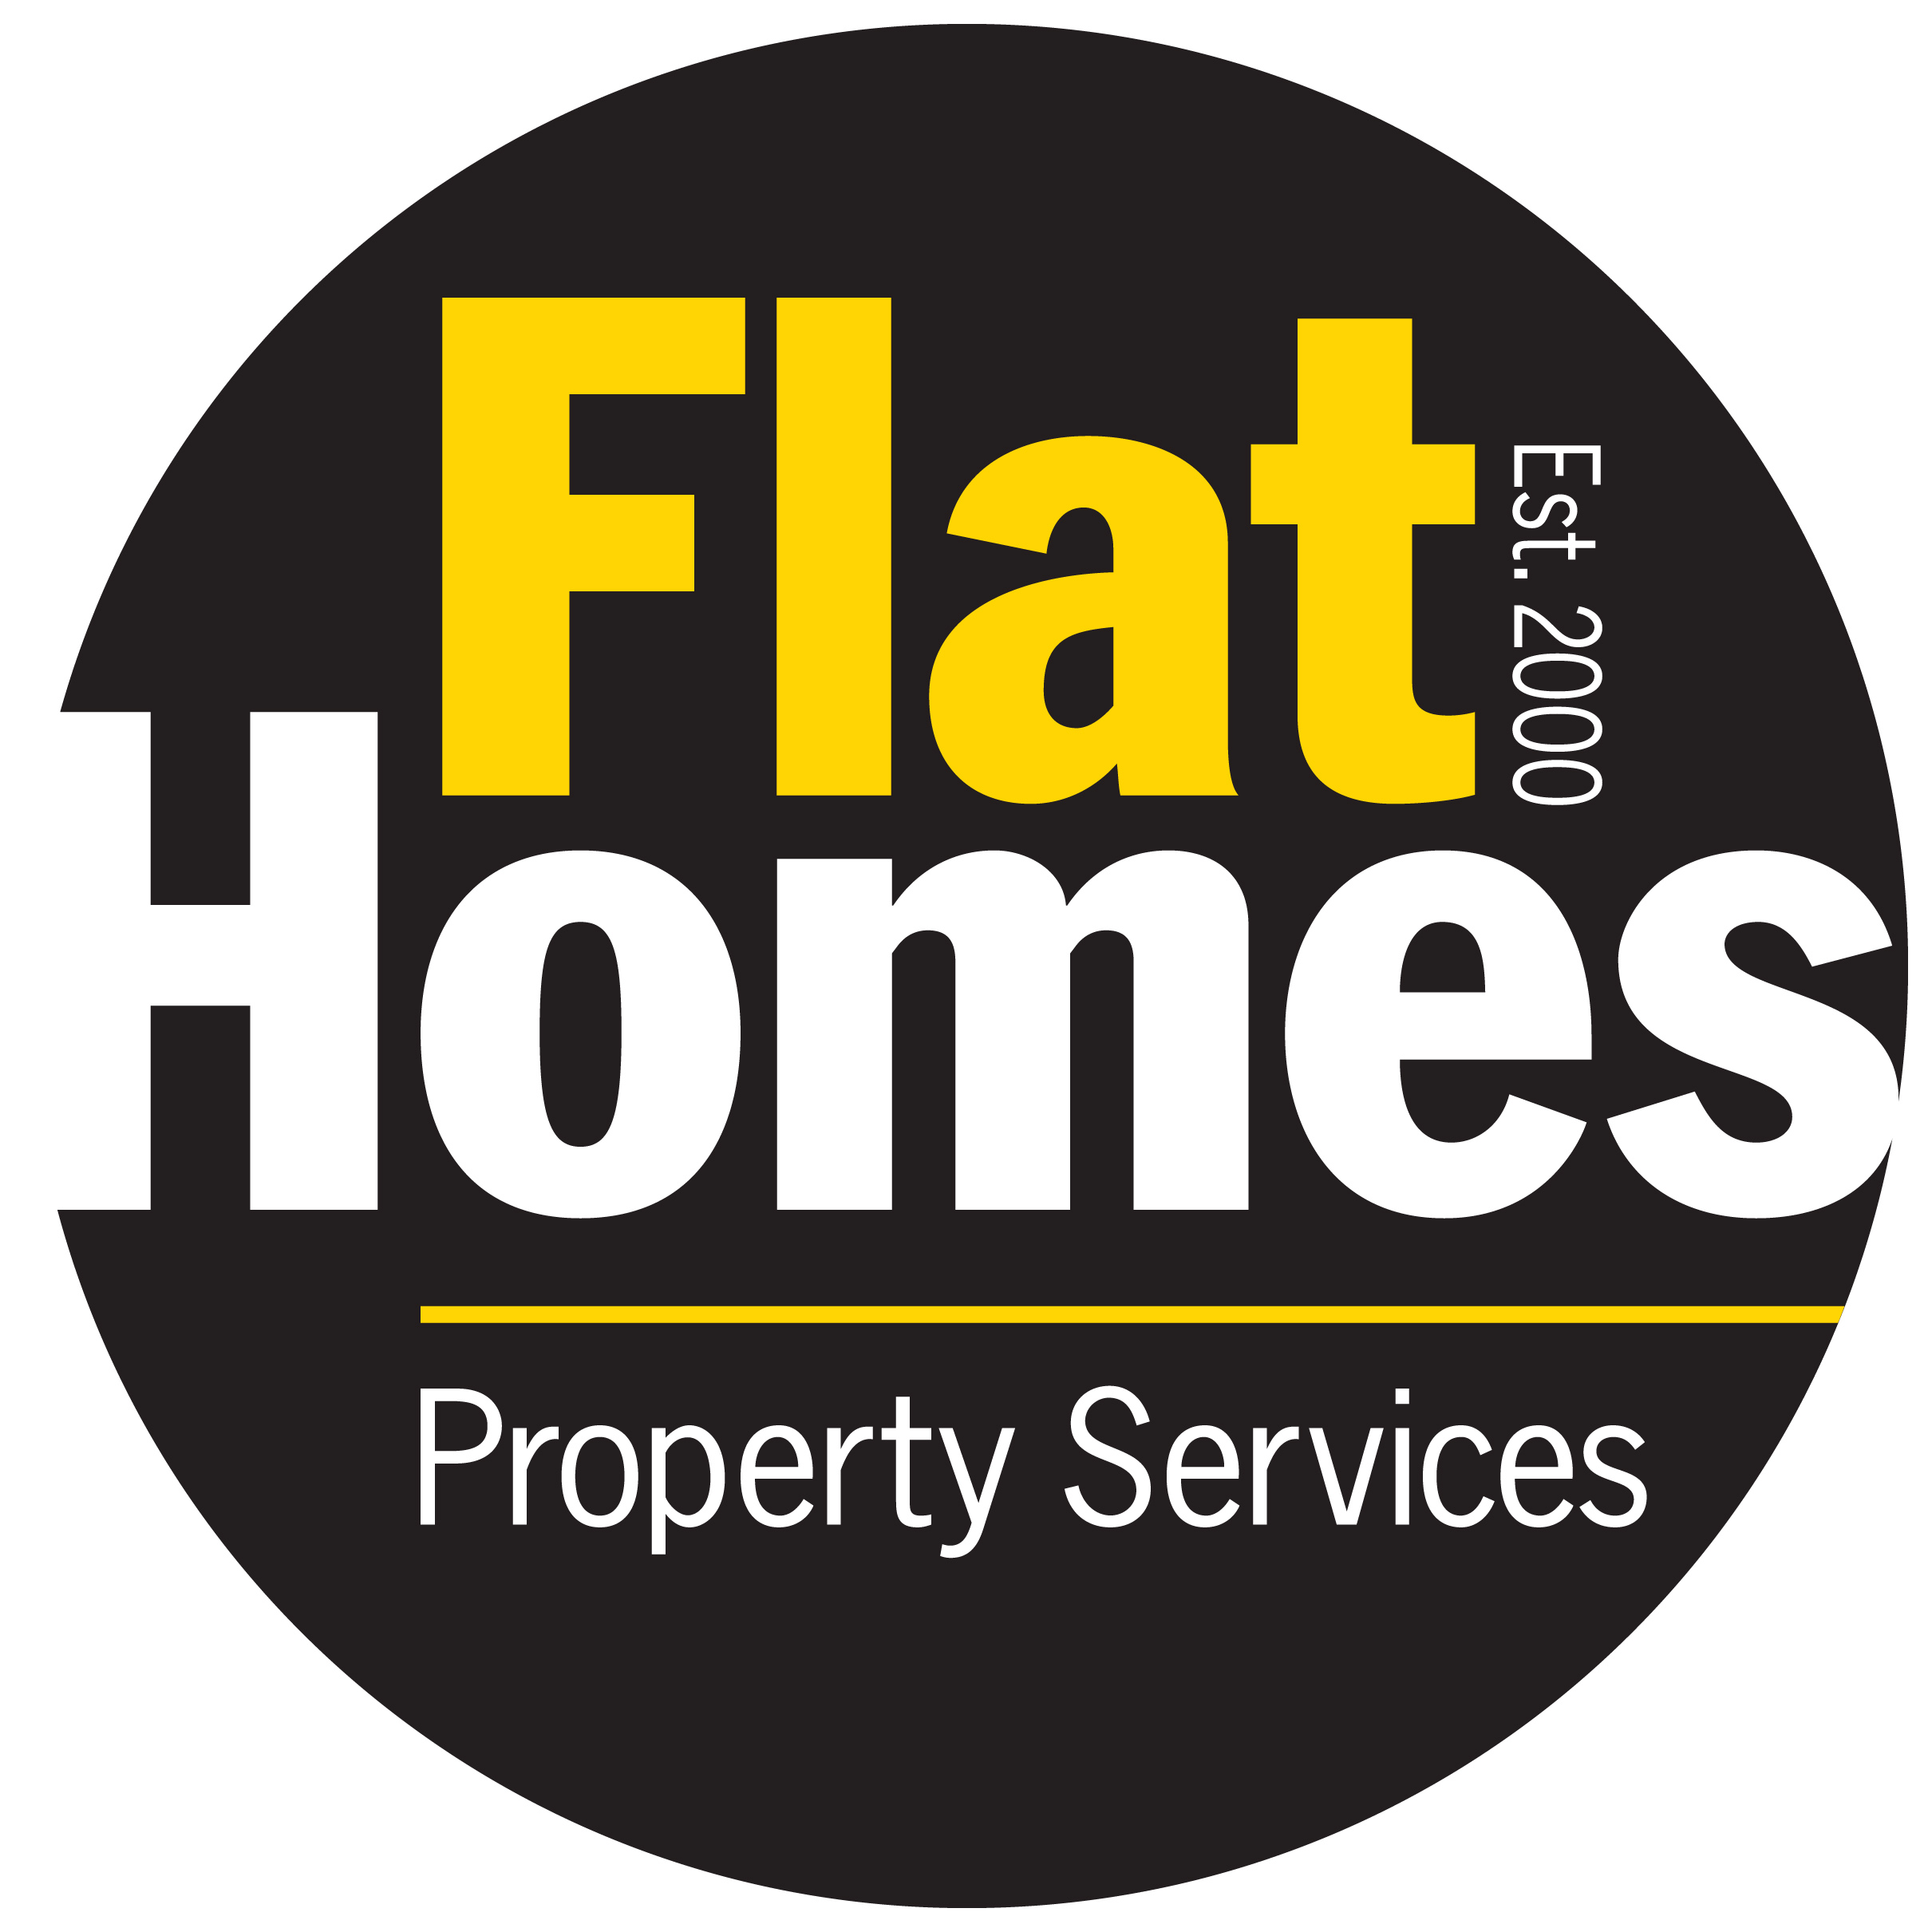 FlatHomes Property Services - Cardiff, South Glamorgan CF14 3BL - 02921 121212 | ShowMeLocal.com